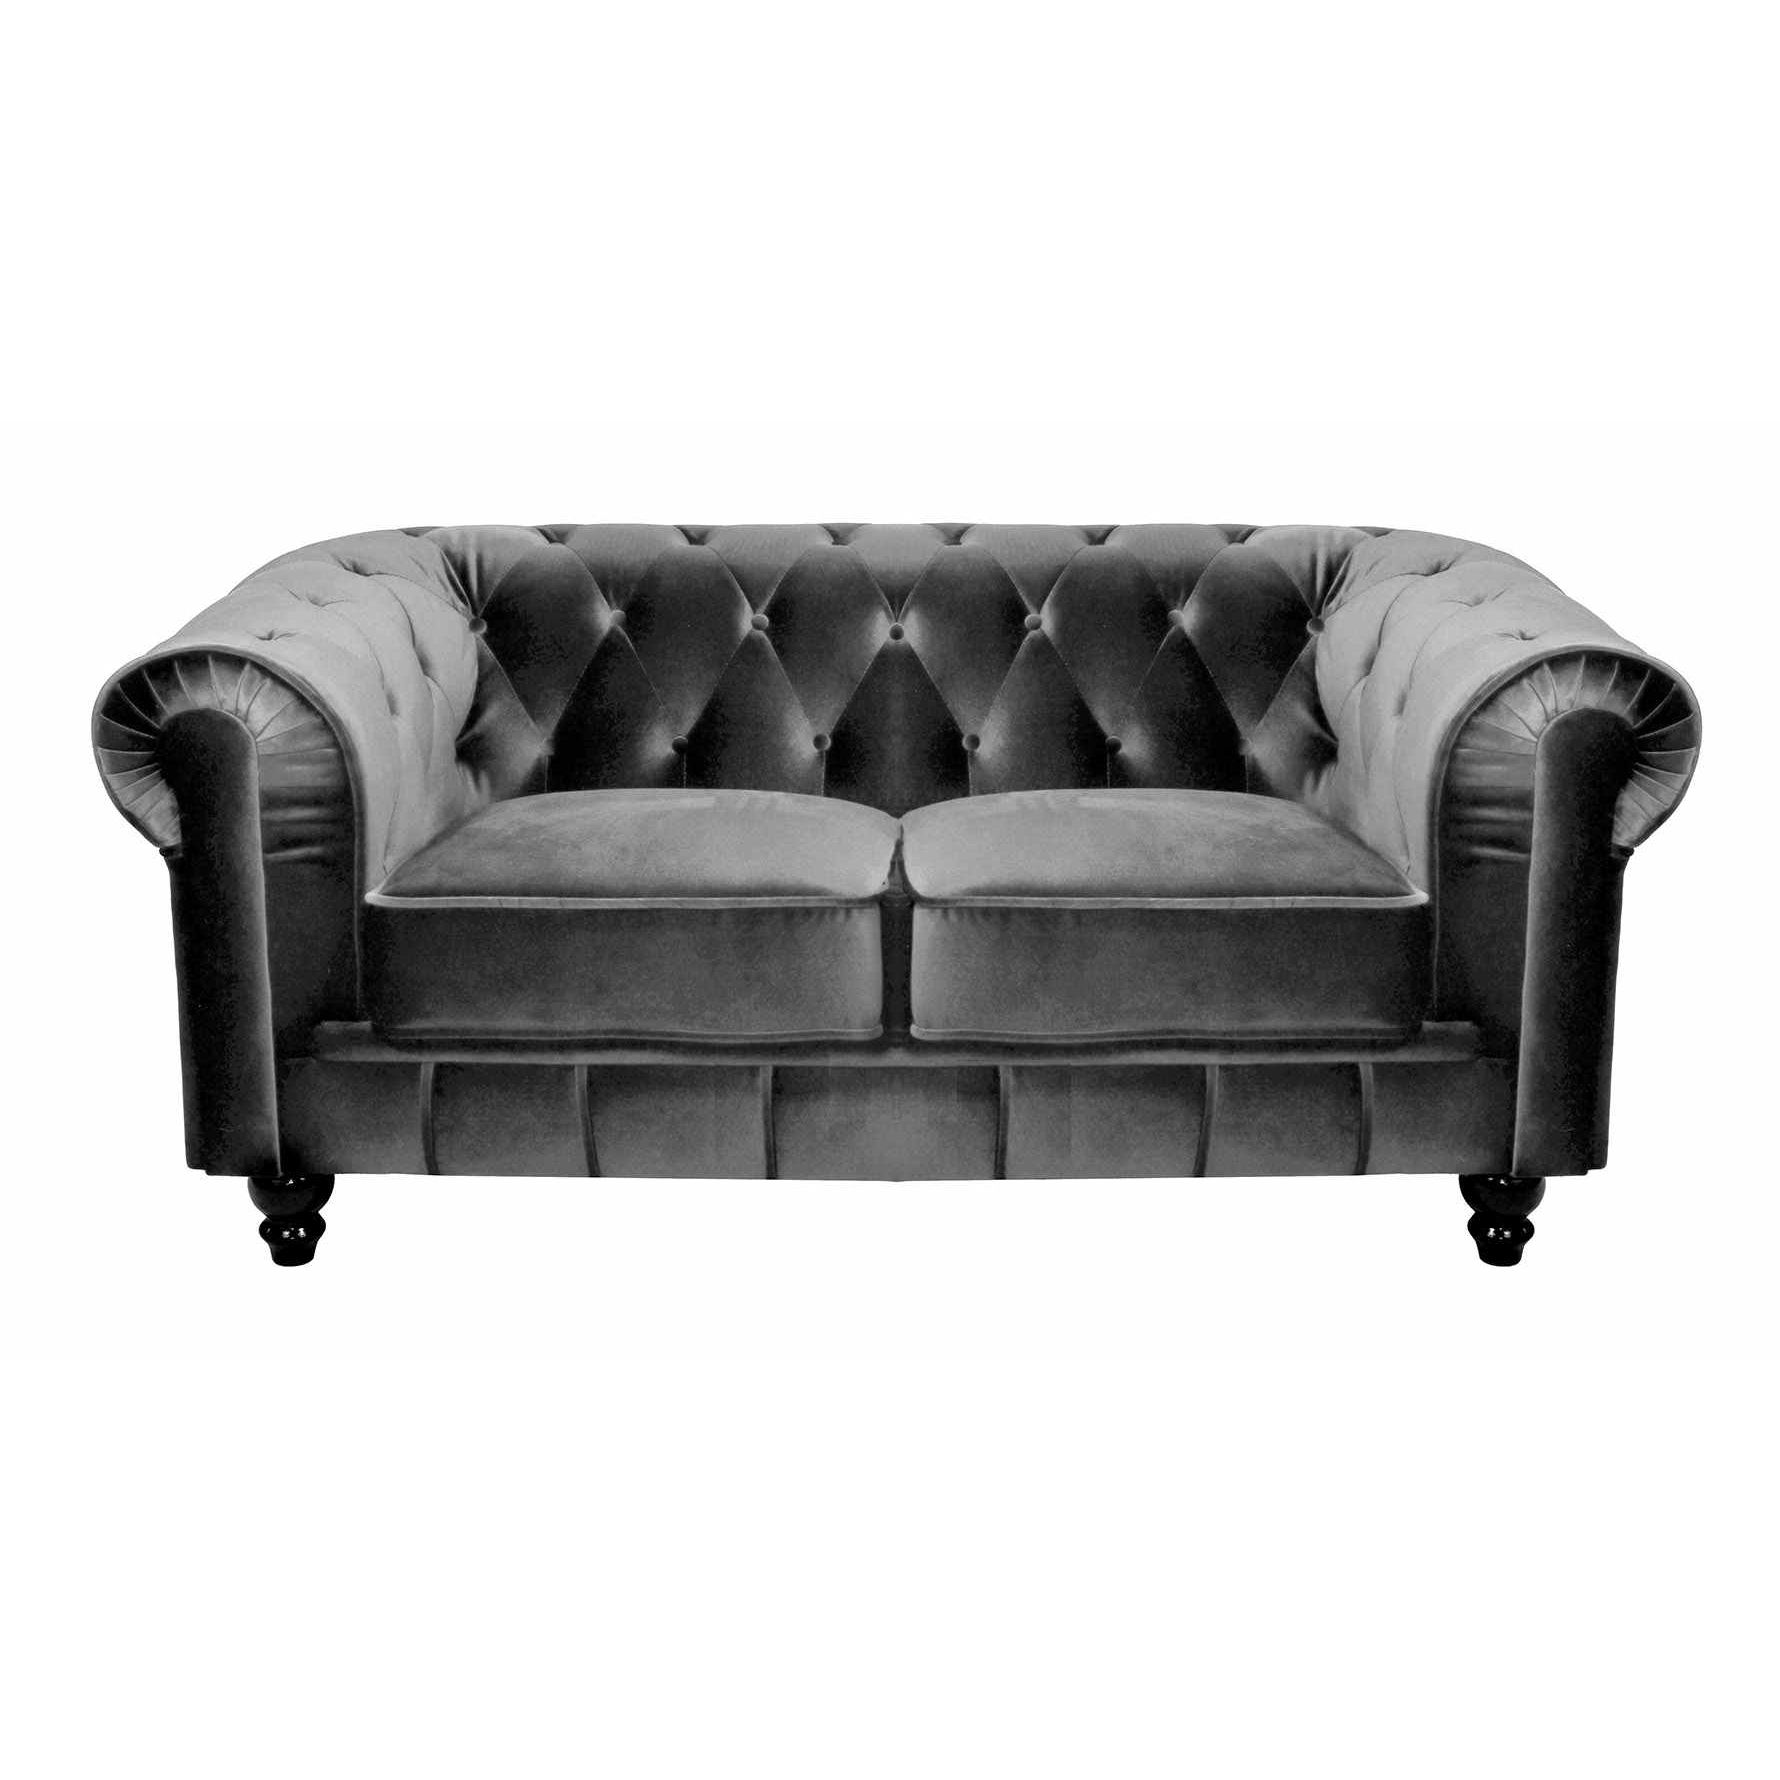 Deco in paris canape 2 places velours gris chesterfield can chester 2p velo - Canape chesterfield convertible 2 places ...